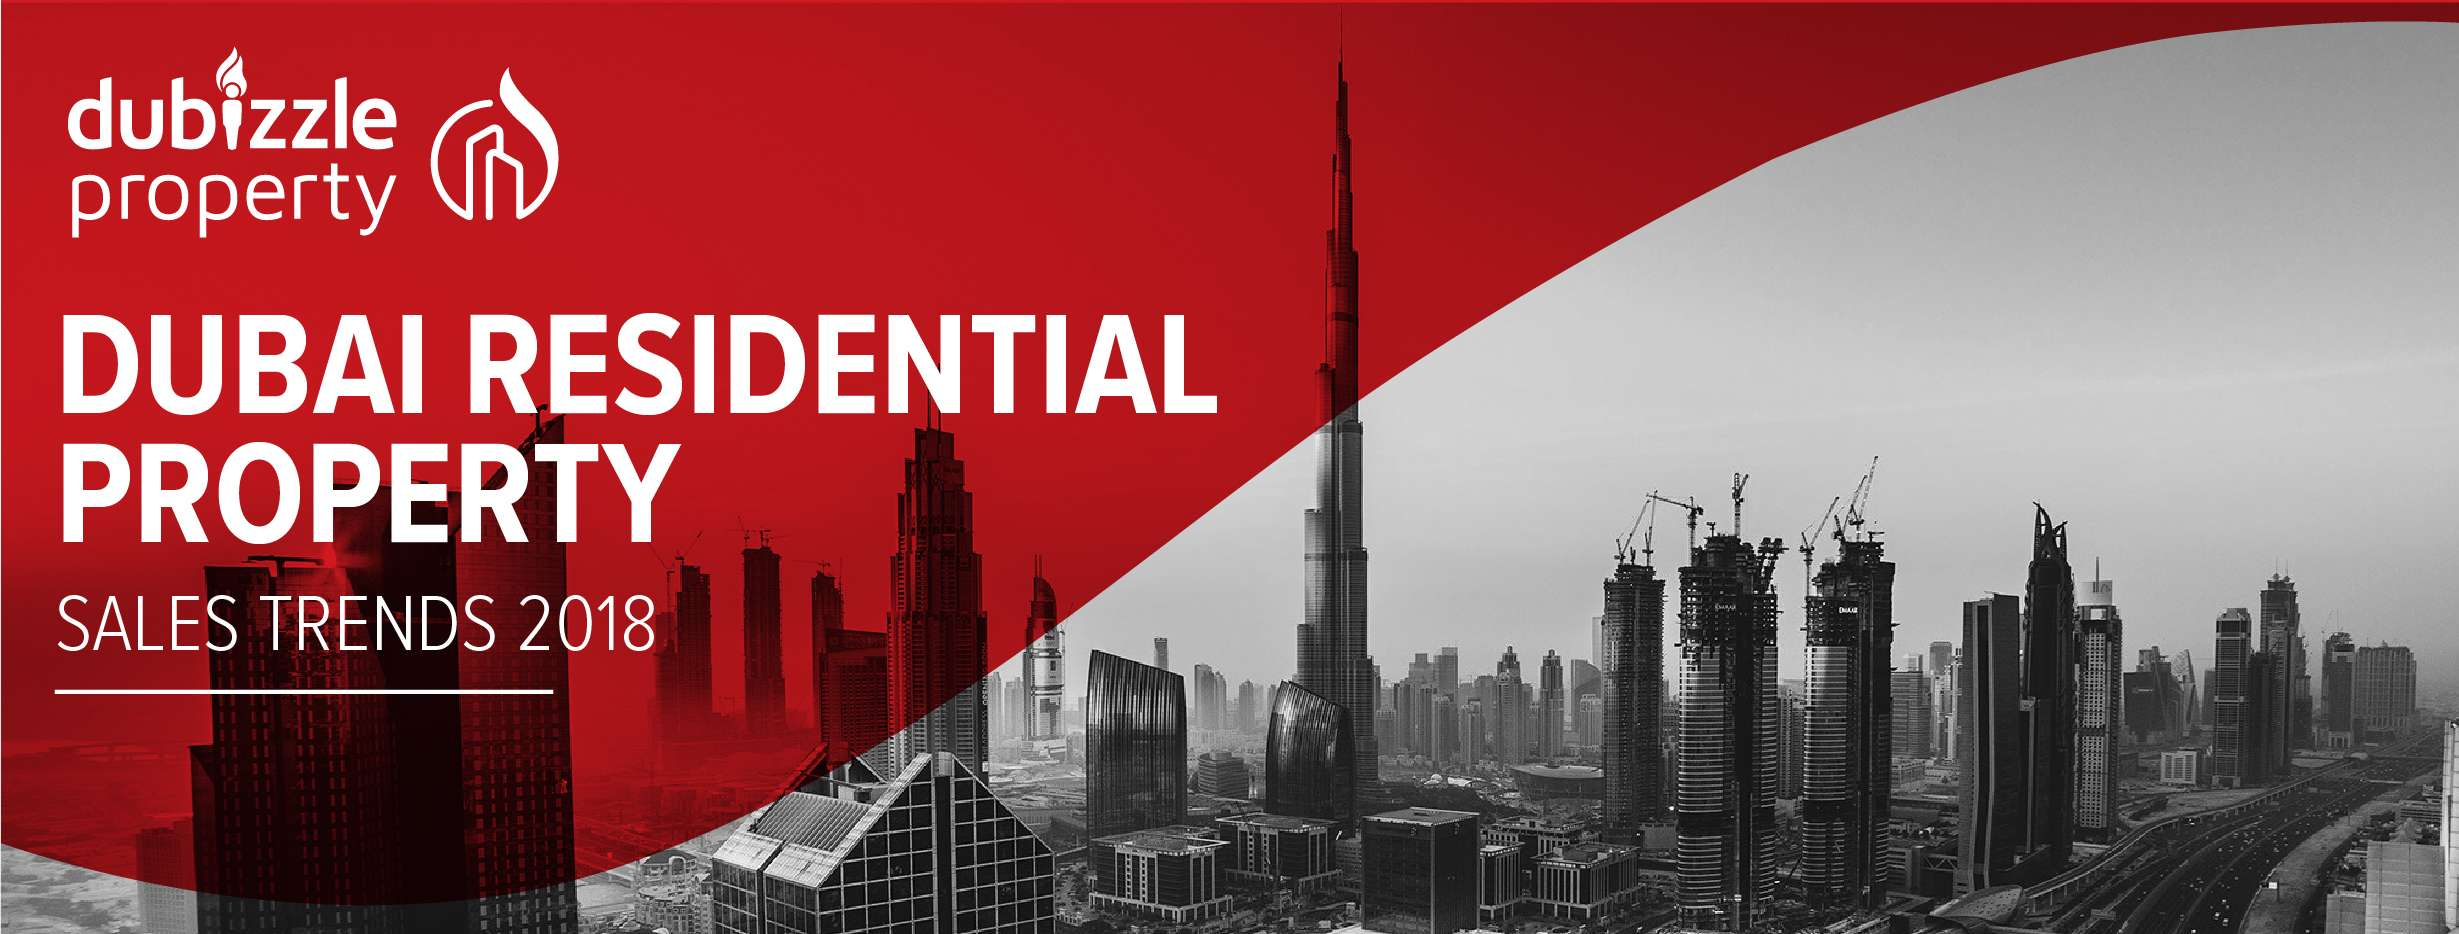 Dubai Residential Property Sales Trend 2018